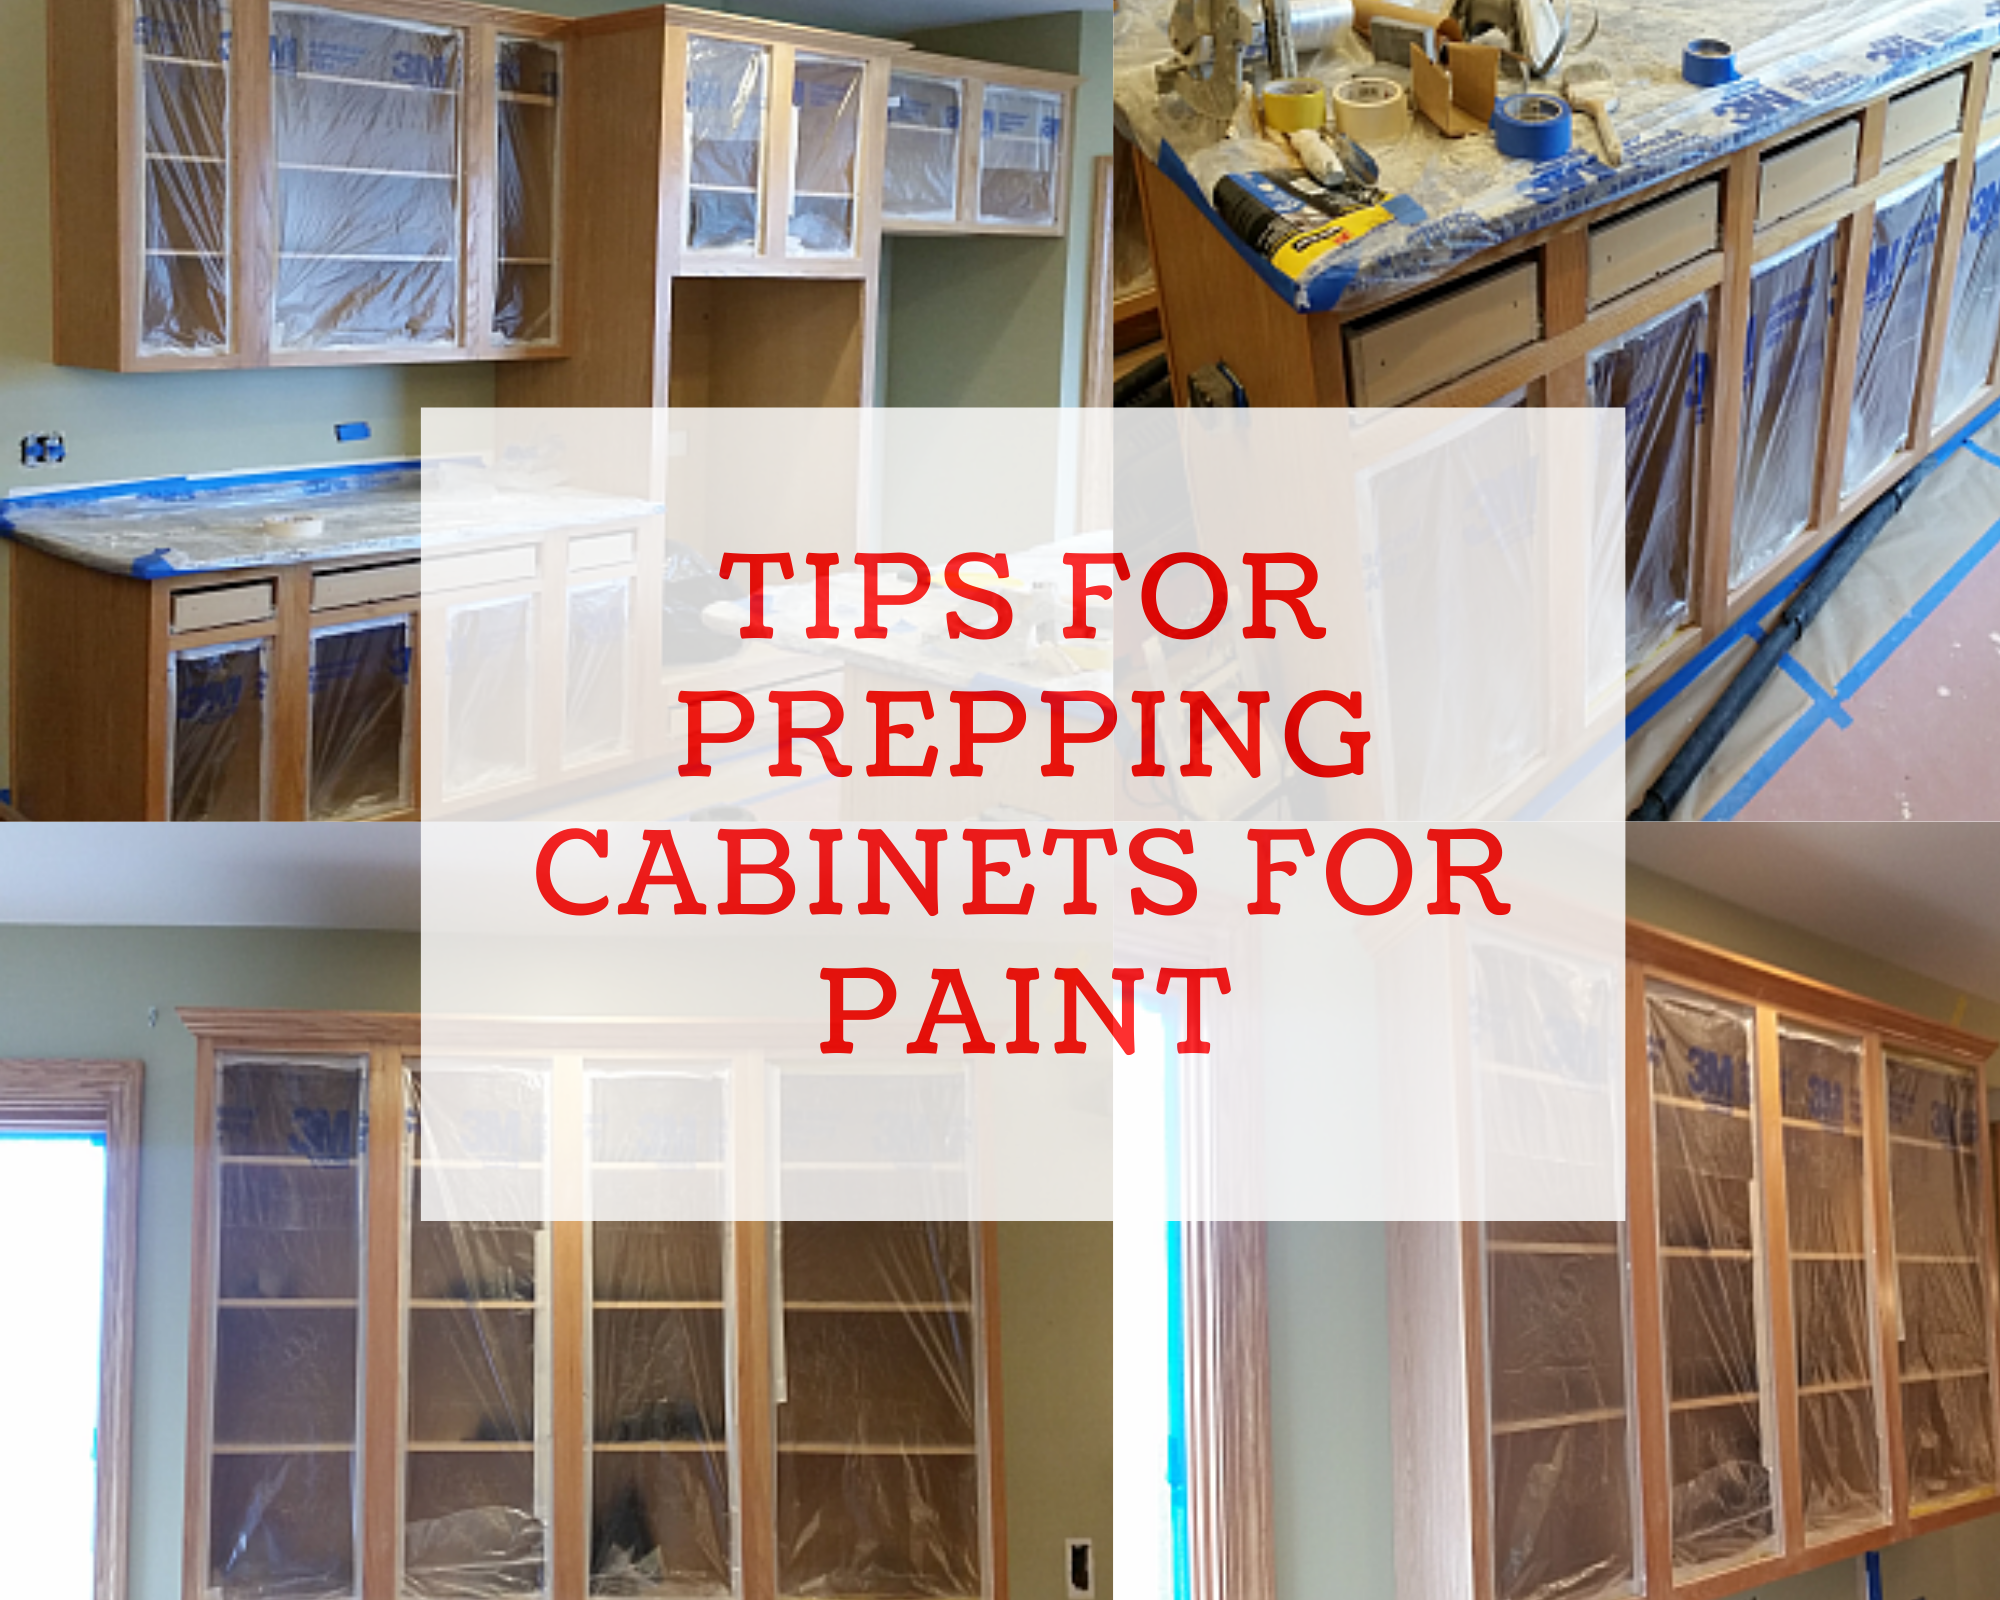 Tips For Prepping Cabinets For Paint Painting Cabinets Painting Kitchen Cabinets Stripping Paint